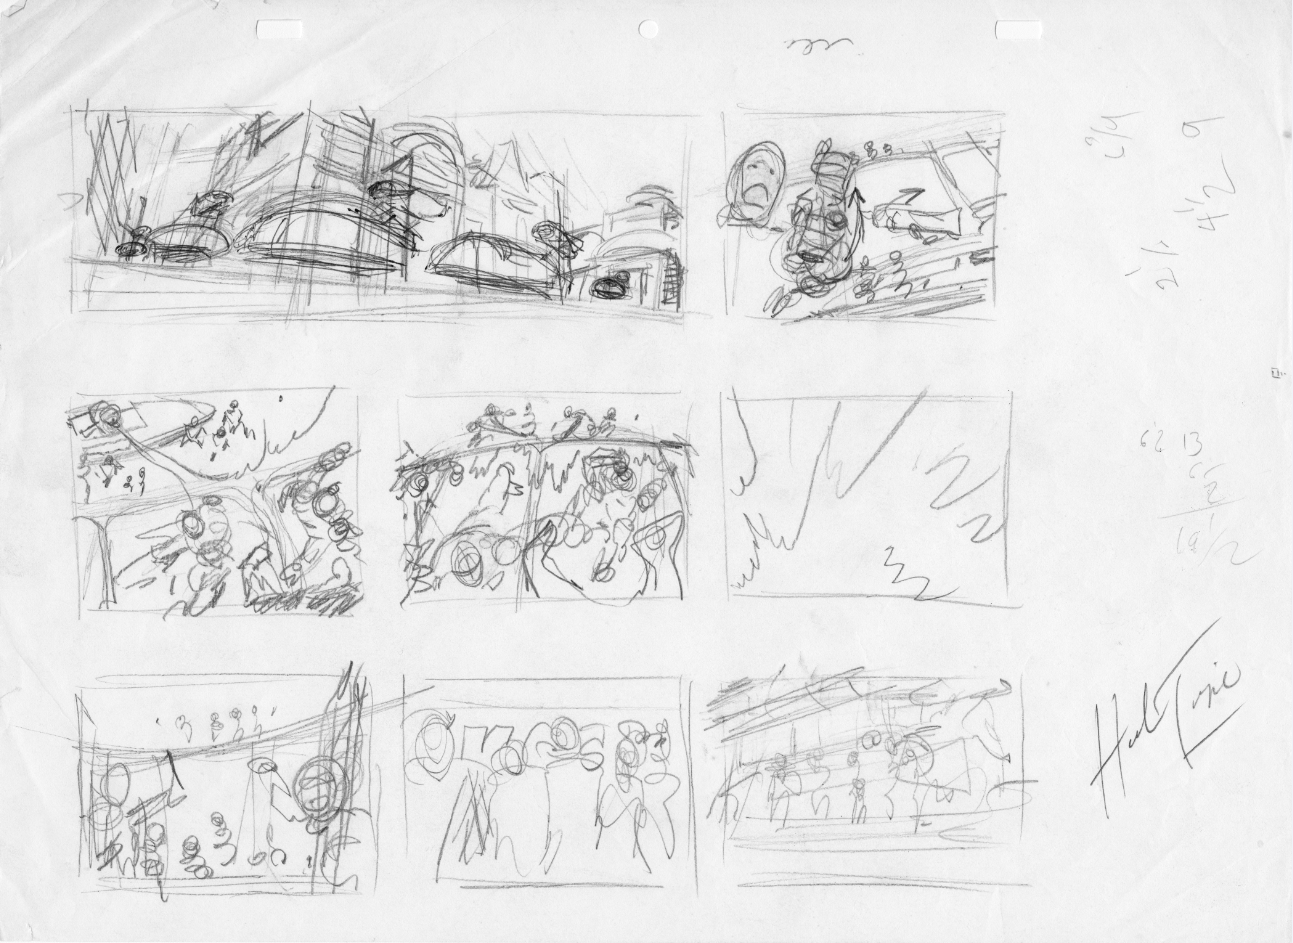 Storyboard for Hovercraft Episode